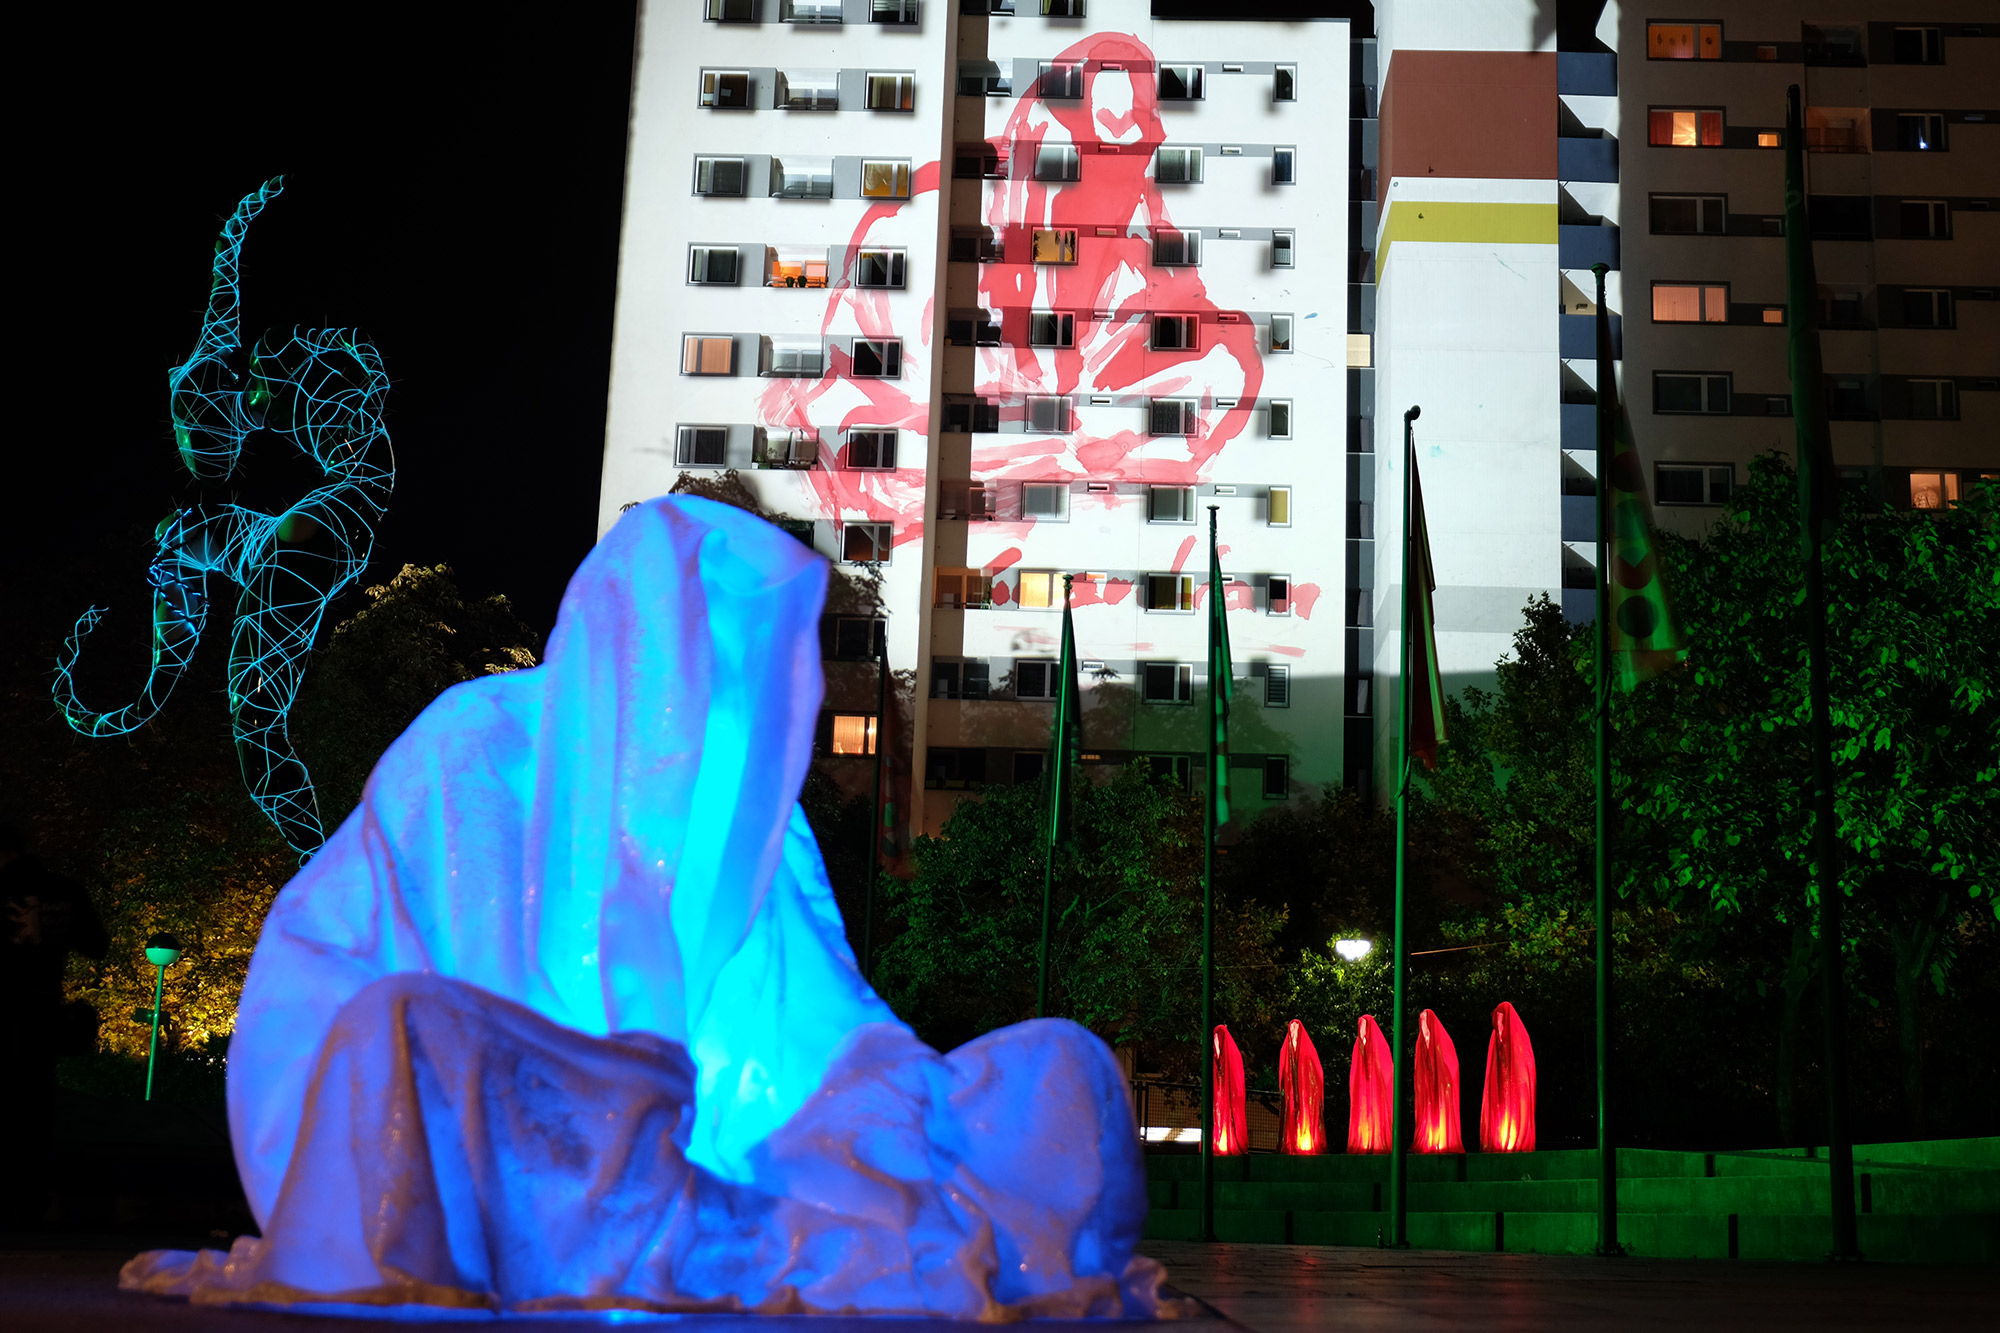 festival-of-lights-berlin-light-art-show-ilumination-lumina-glow-fine-art-modern-design-contemporary-sculpture-statue-ghost-faceless-9112